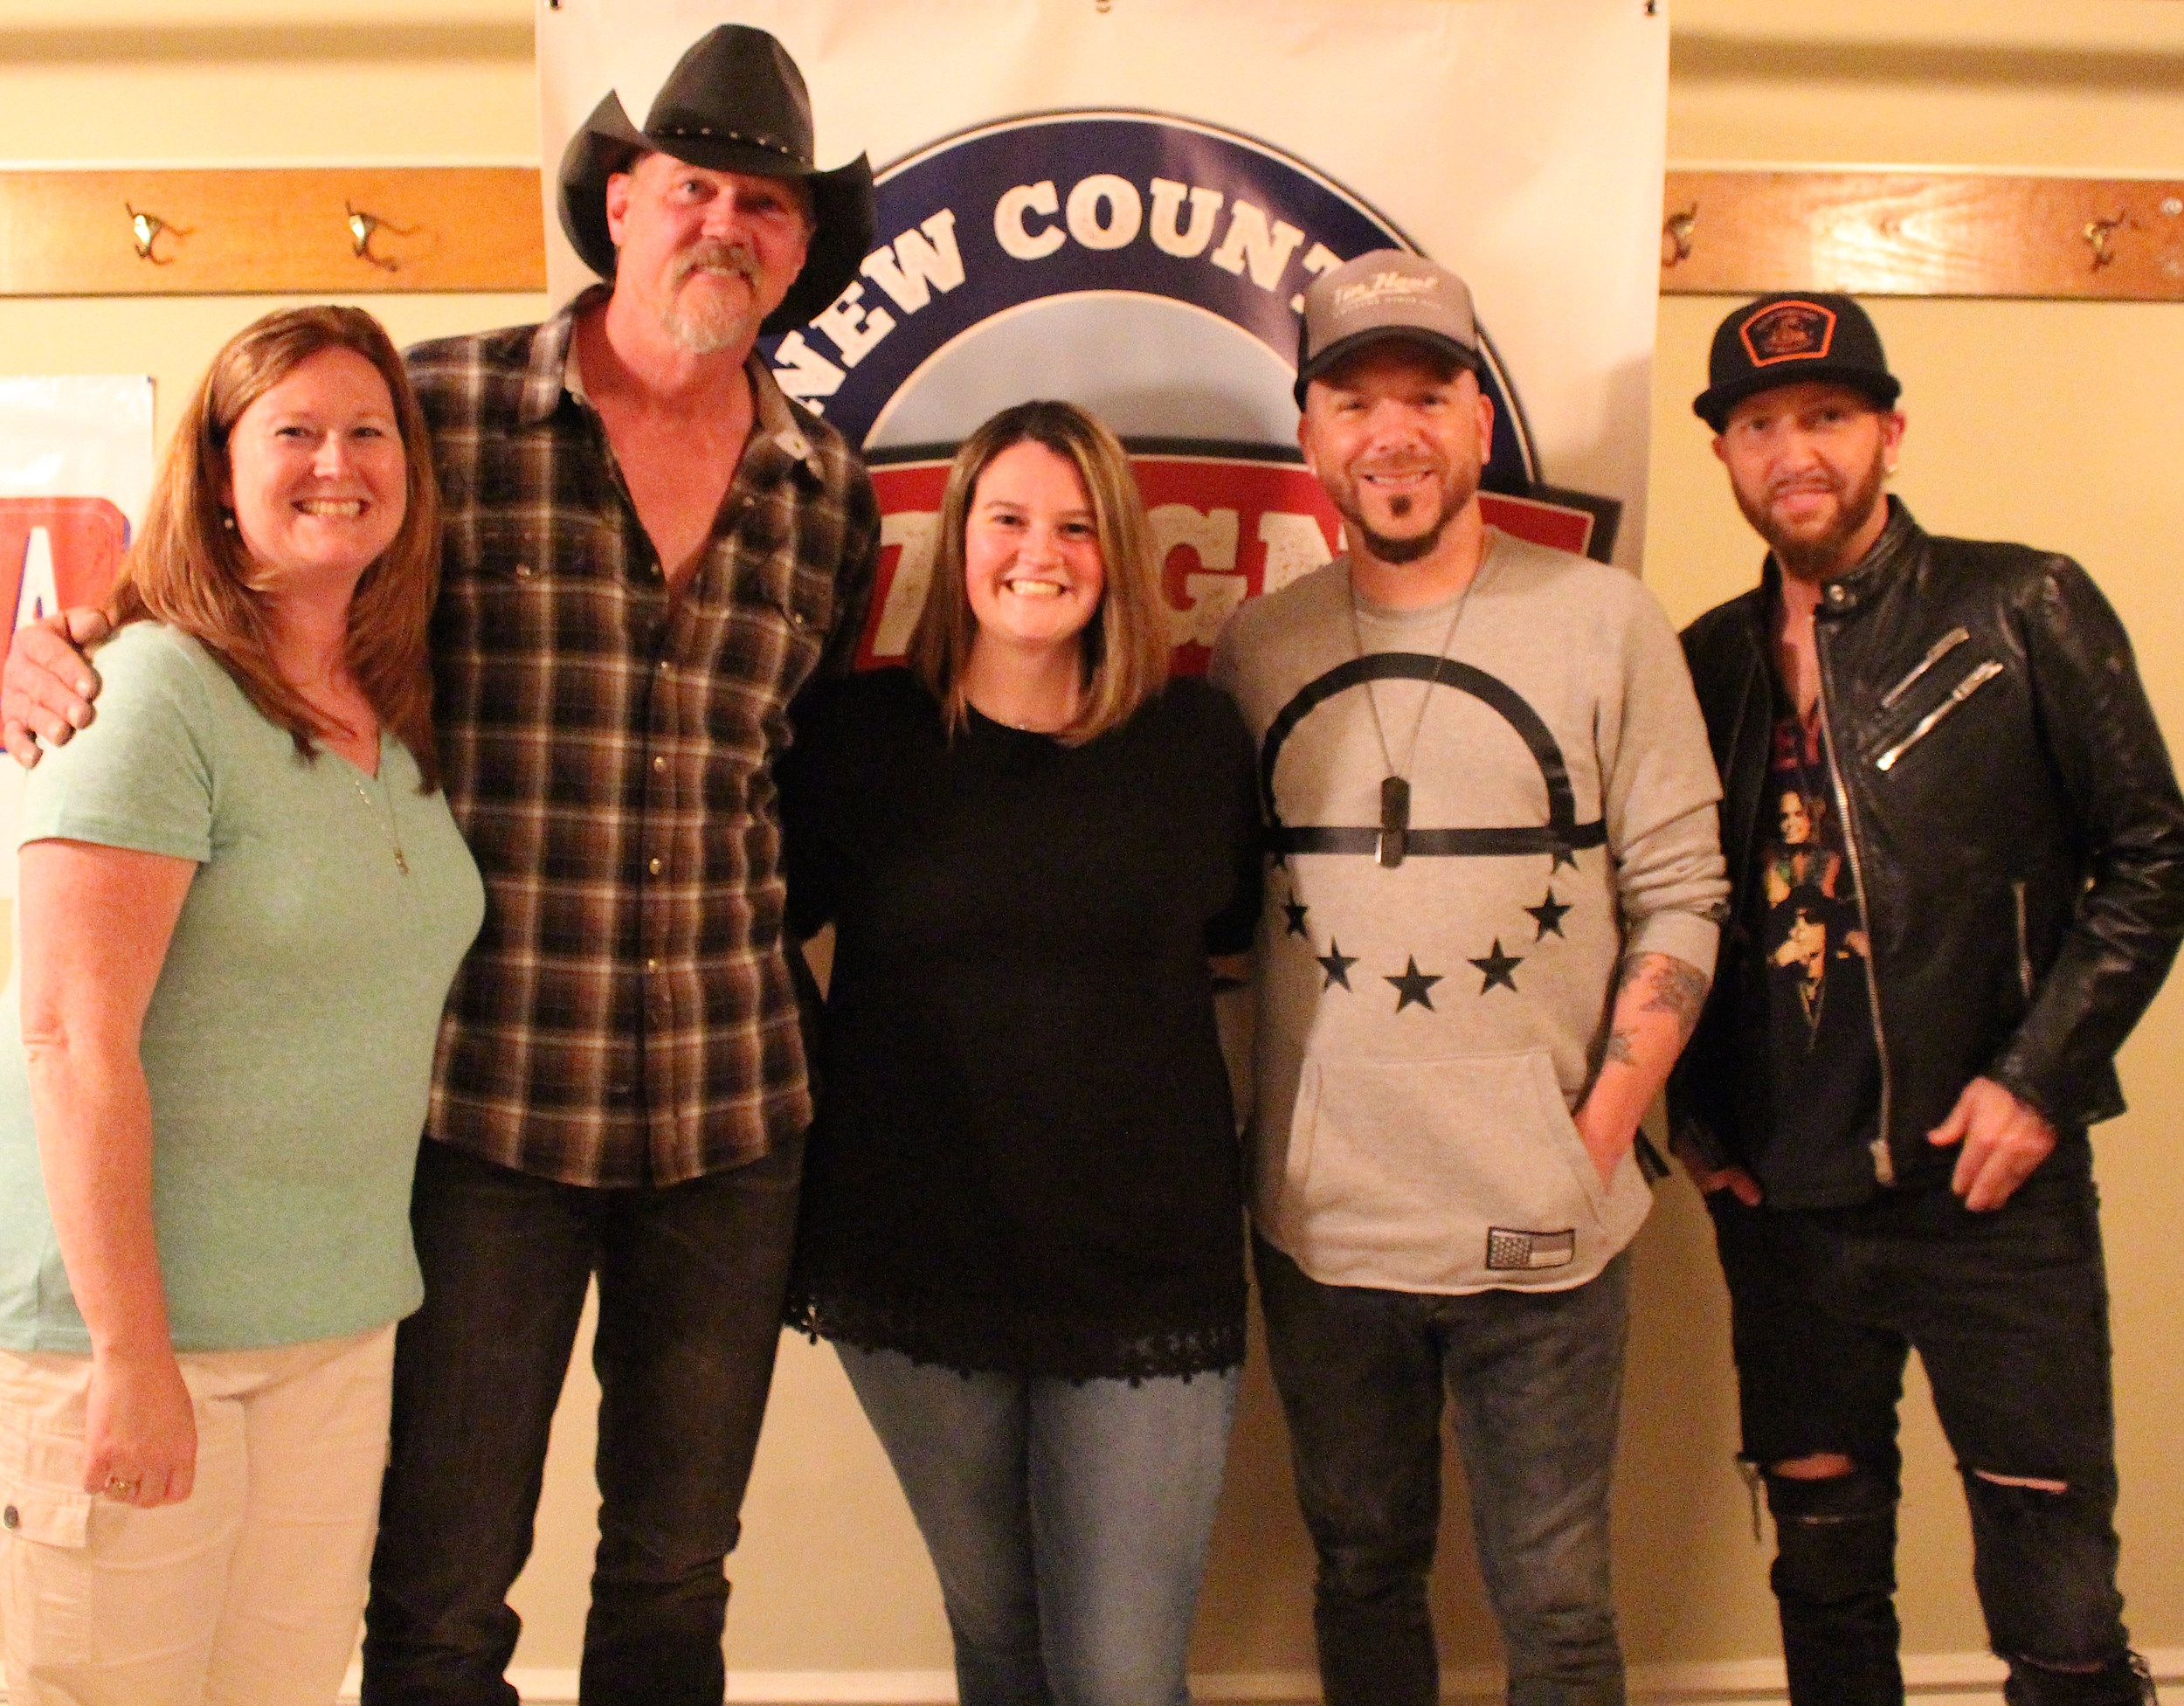 Trace adkins and locash meet greets gallery kristyandbryce Choice Image